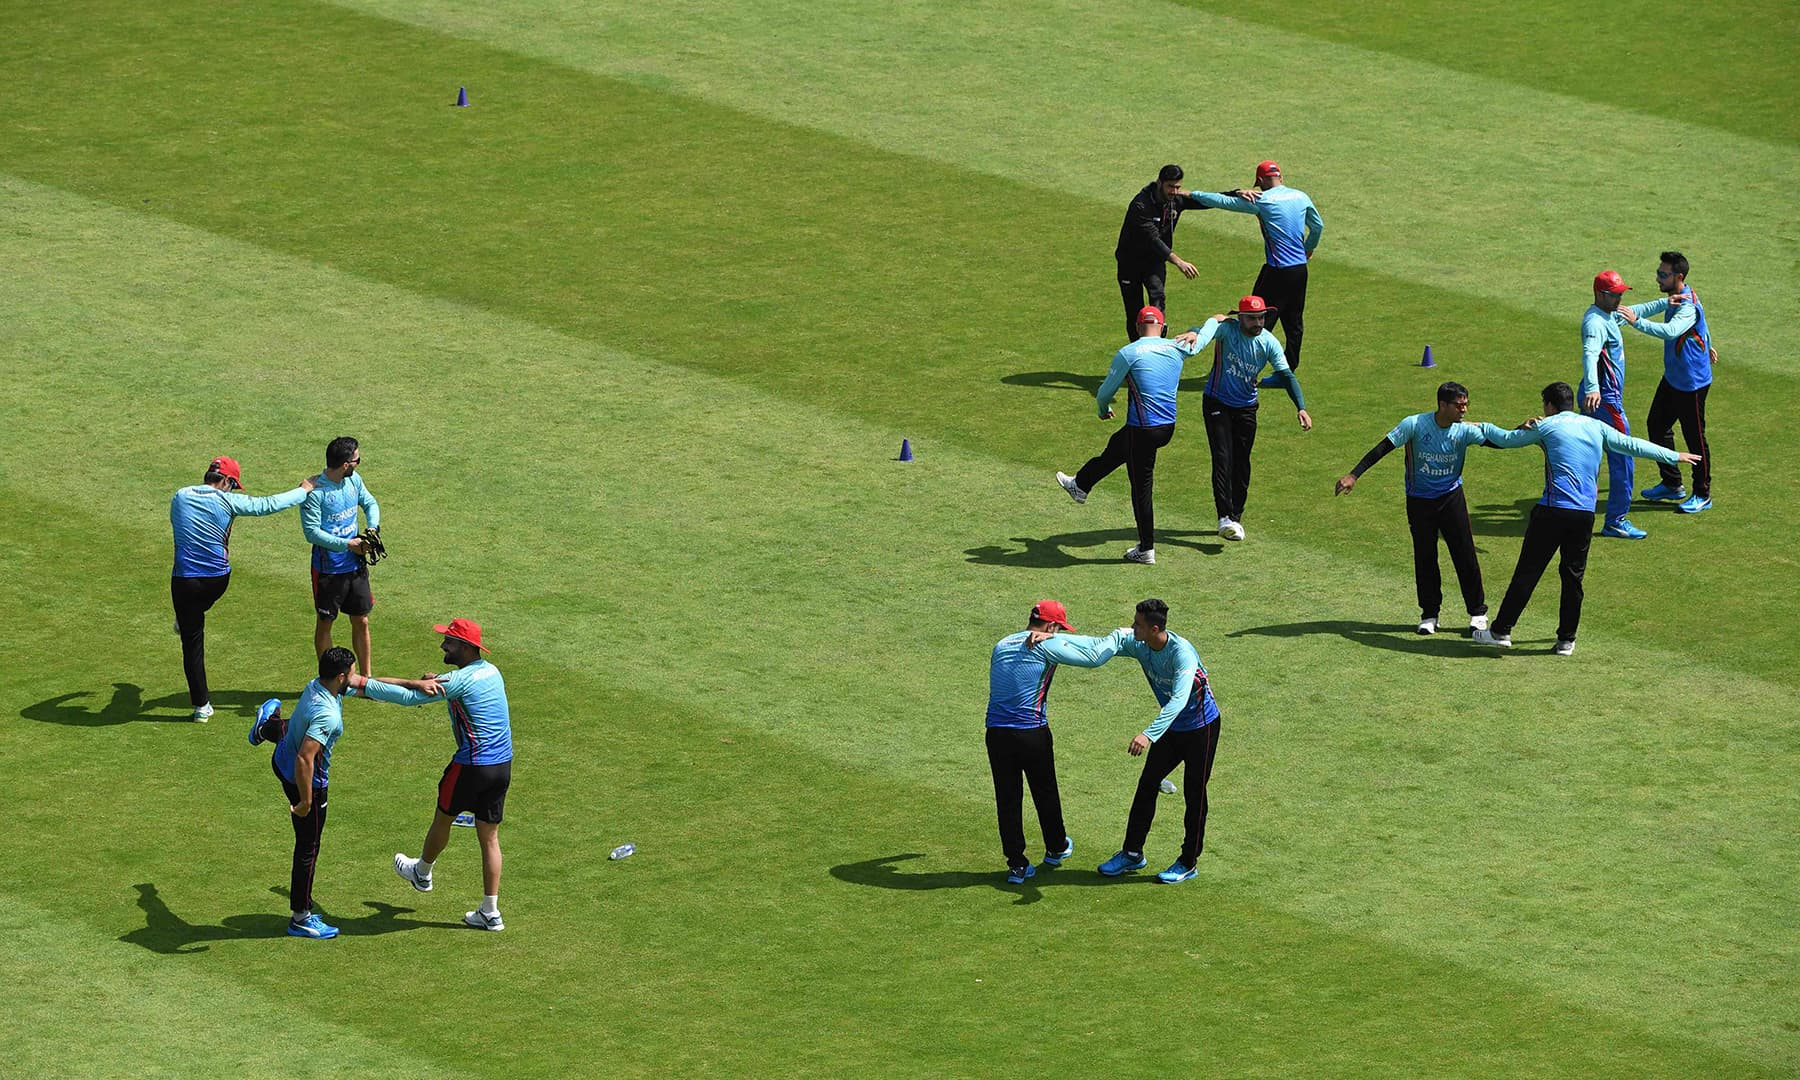 Afghanistan players doing warmup exercises during a training session at Headingly. — AFP